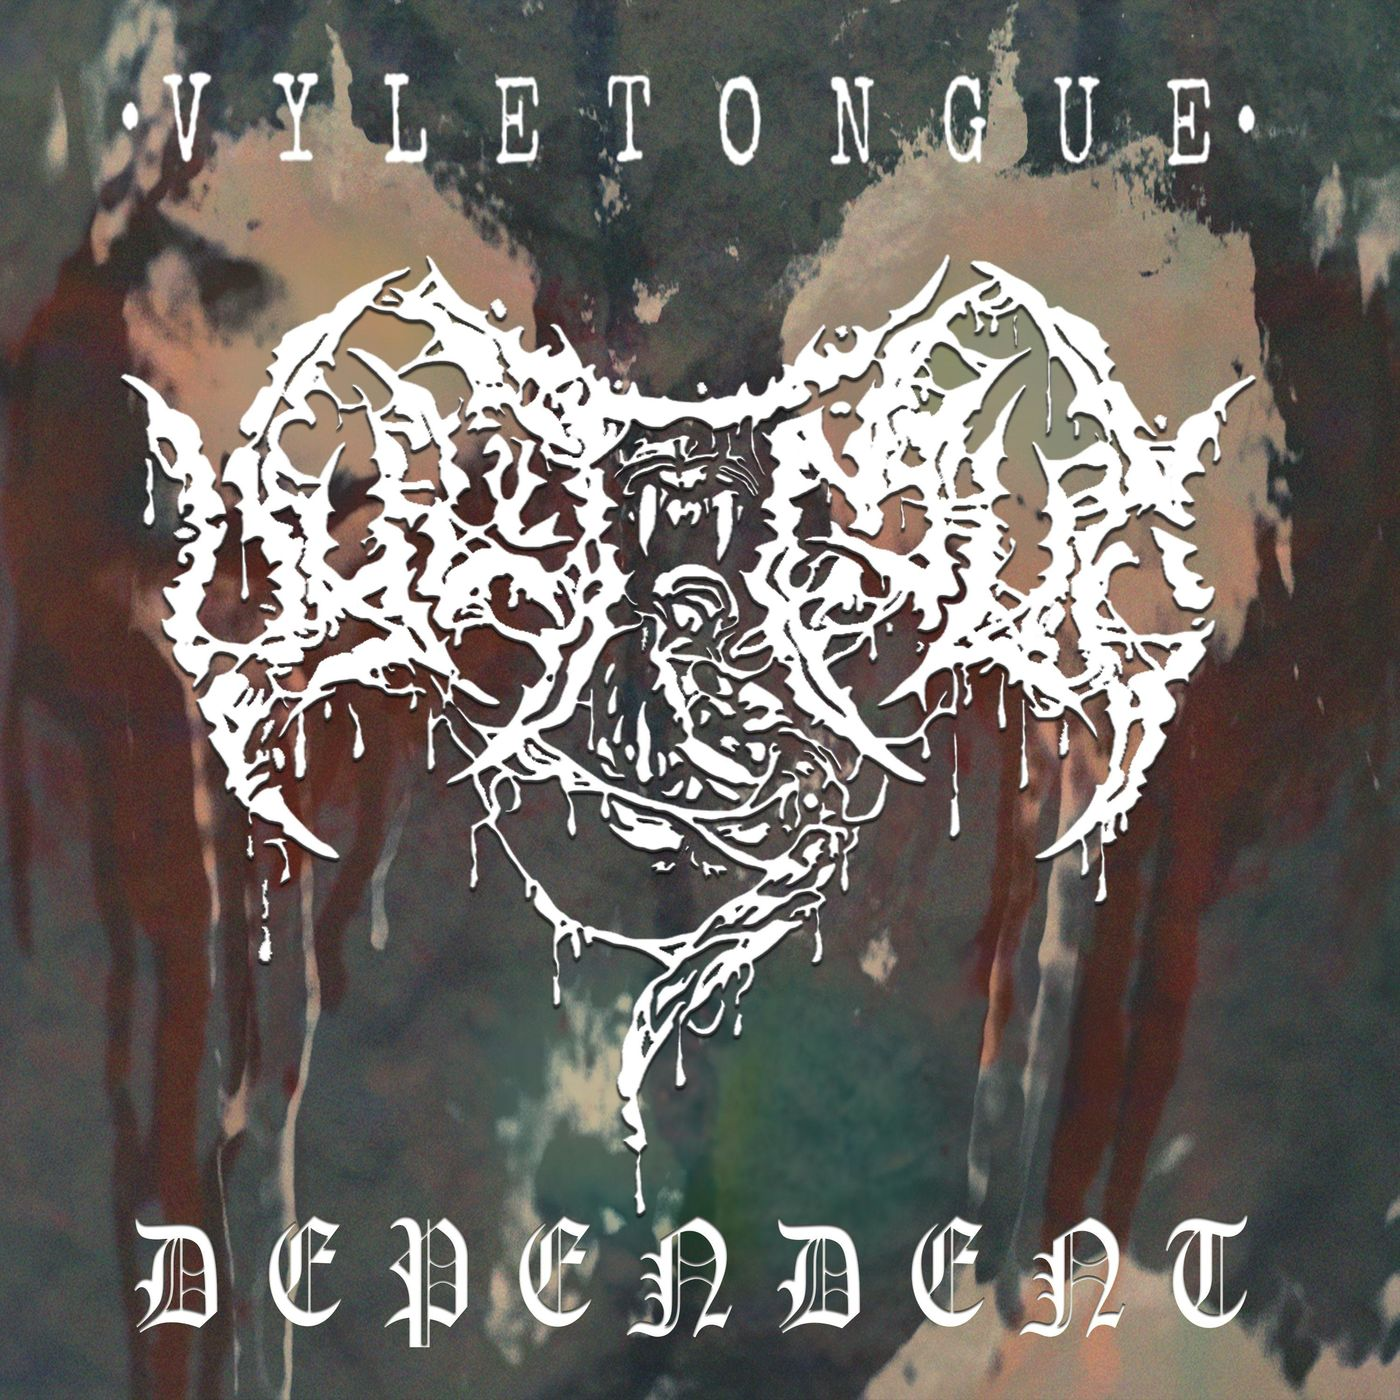 Vyletongue - Dependent [single] (2020)